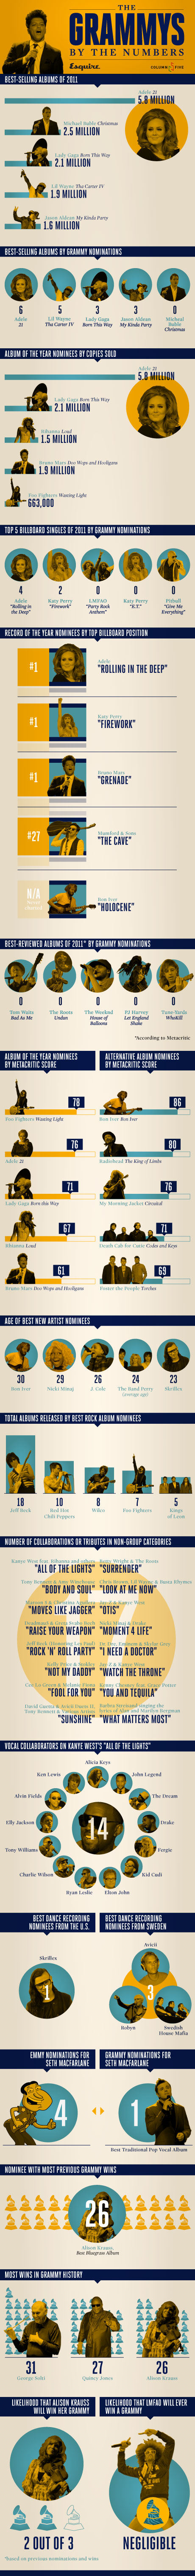 The Truth About The Grammys: A Chart